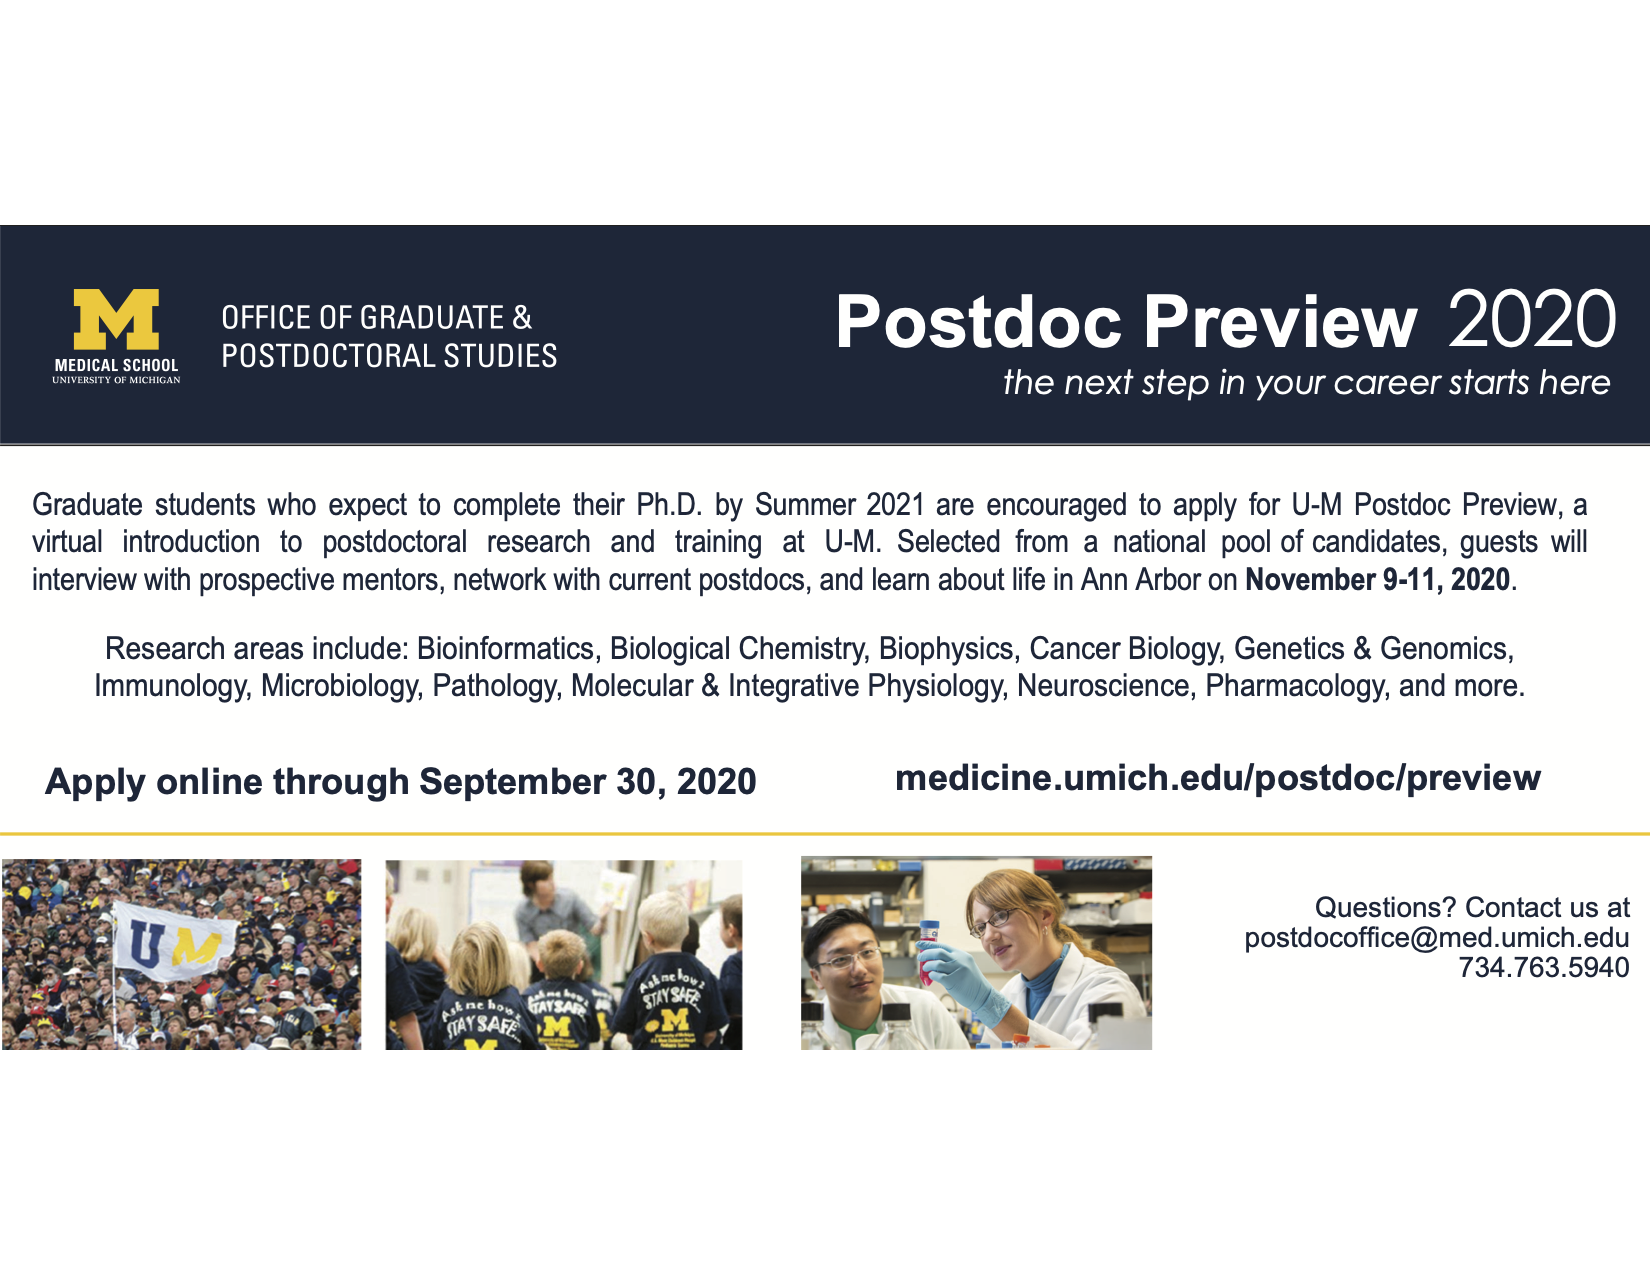 Postdoc Preview at Univ of Michigan Medical School | BRET Career  Development ASPIRE Program | Vanderbilt University